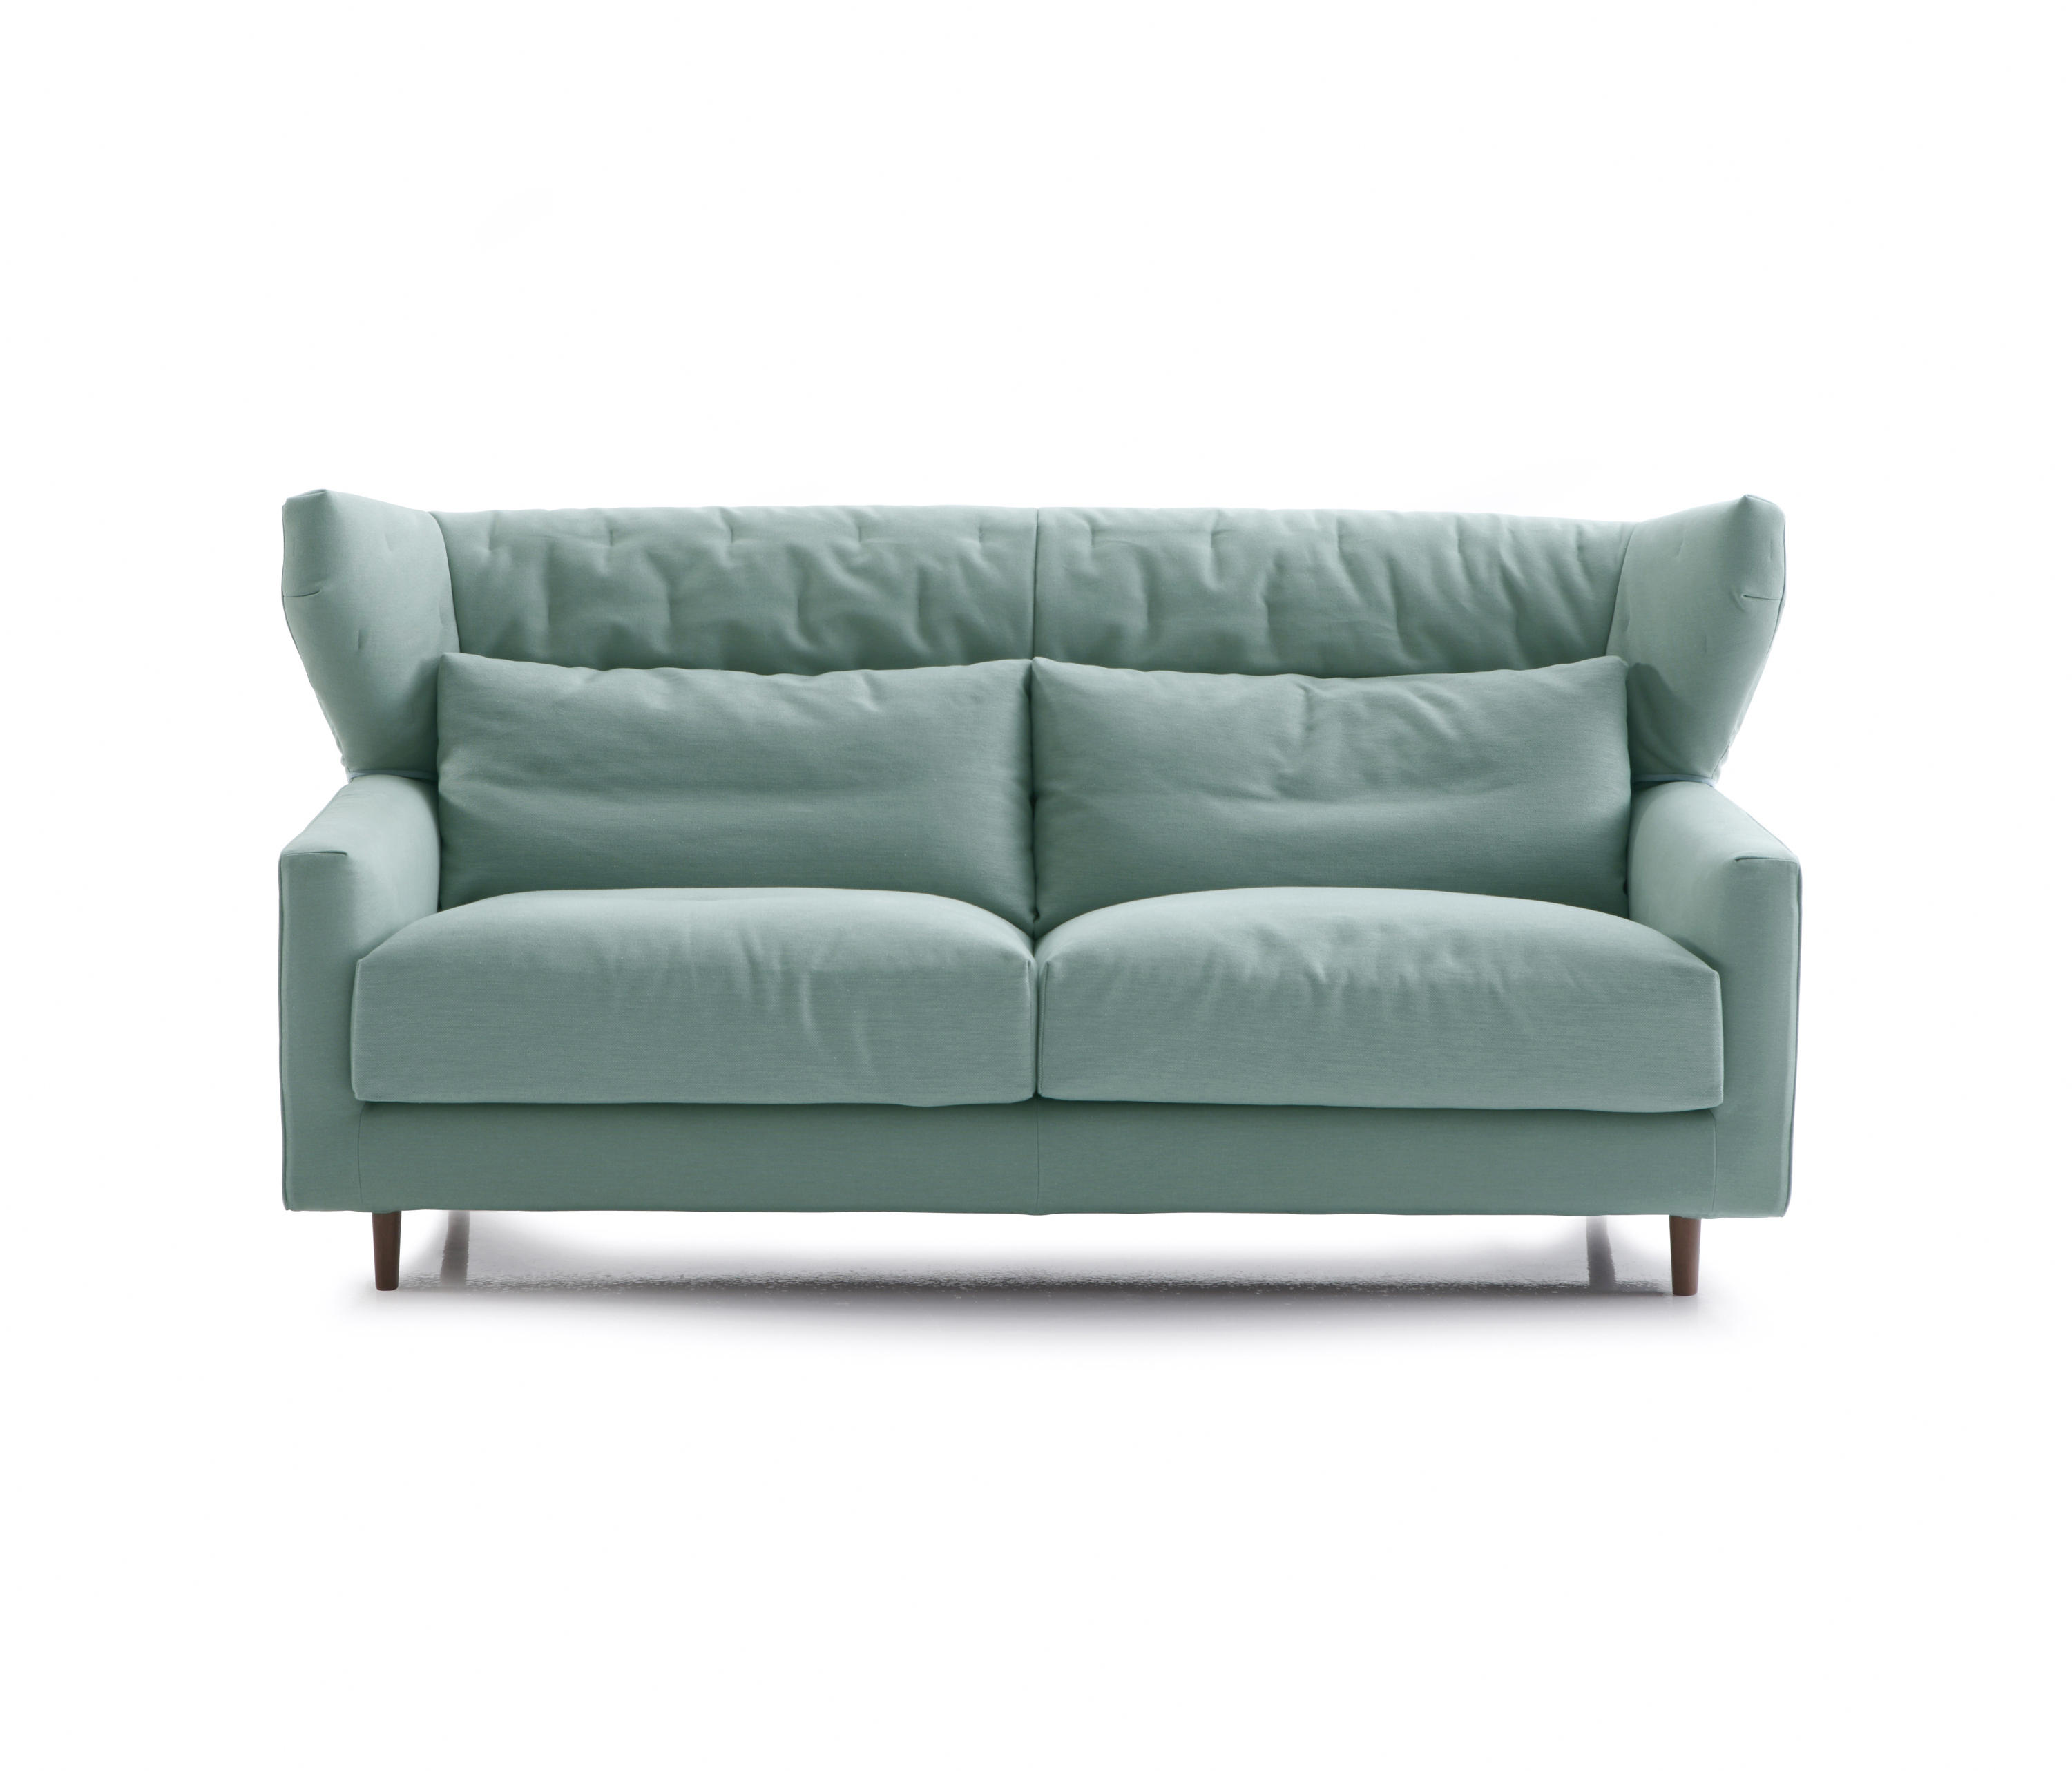 folk lounge sofas from sancal architonic